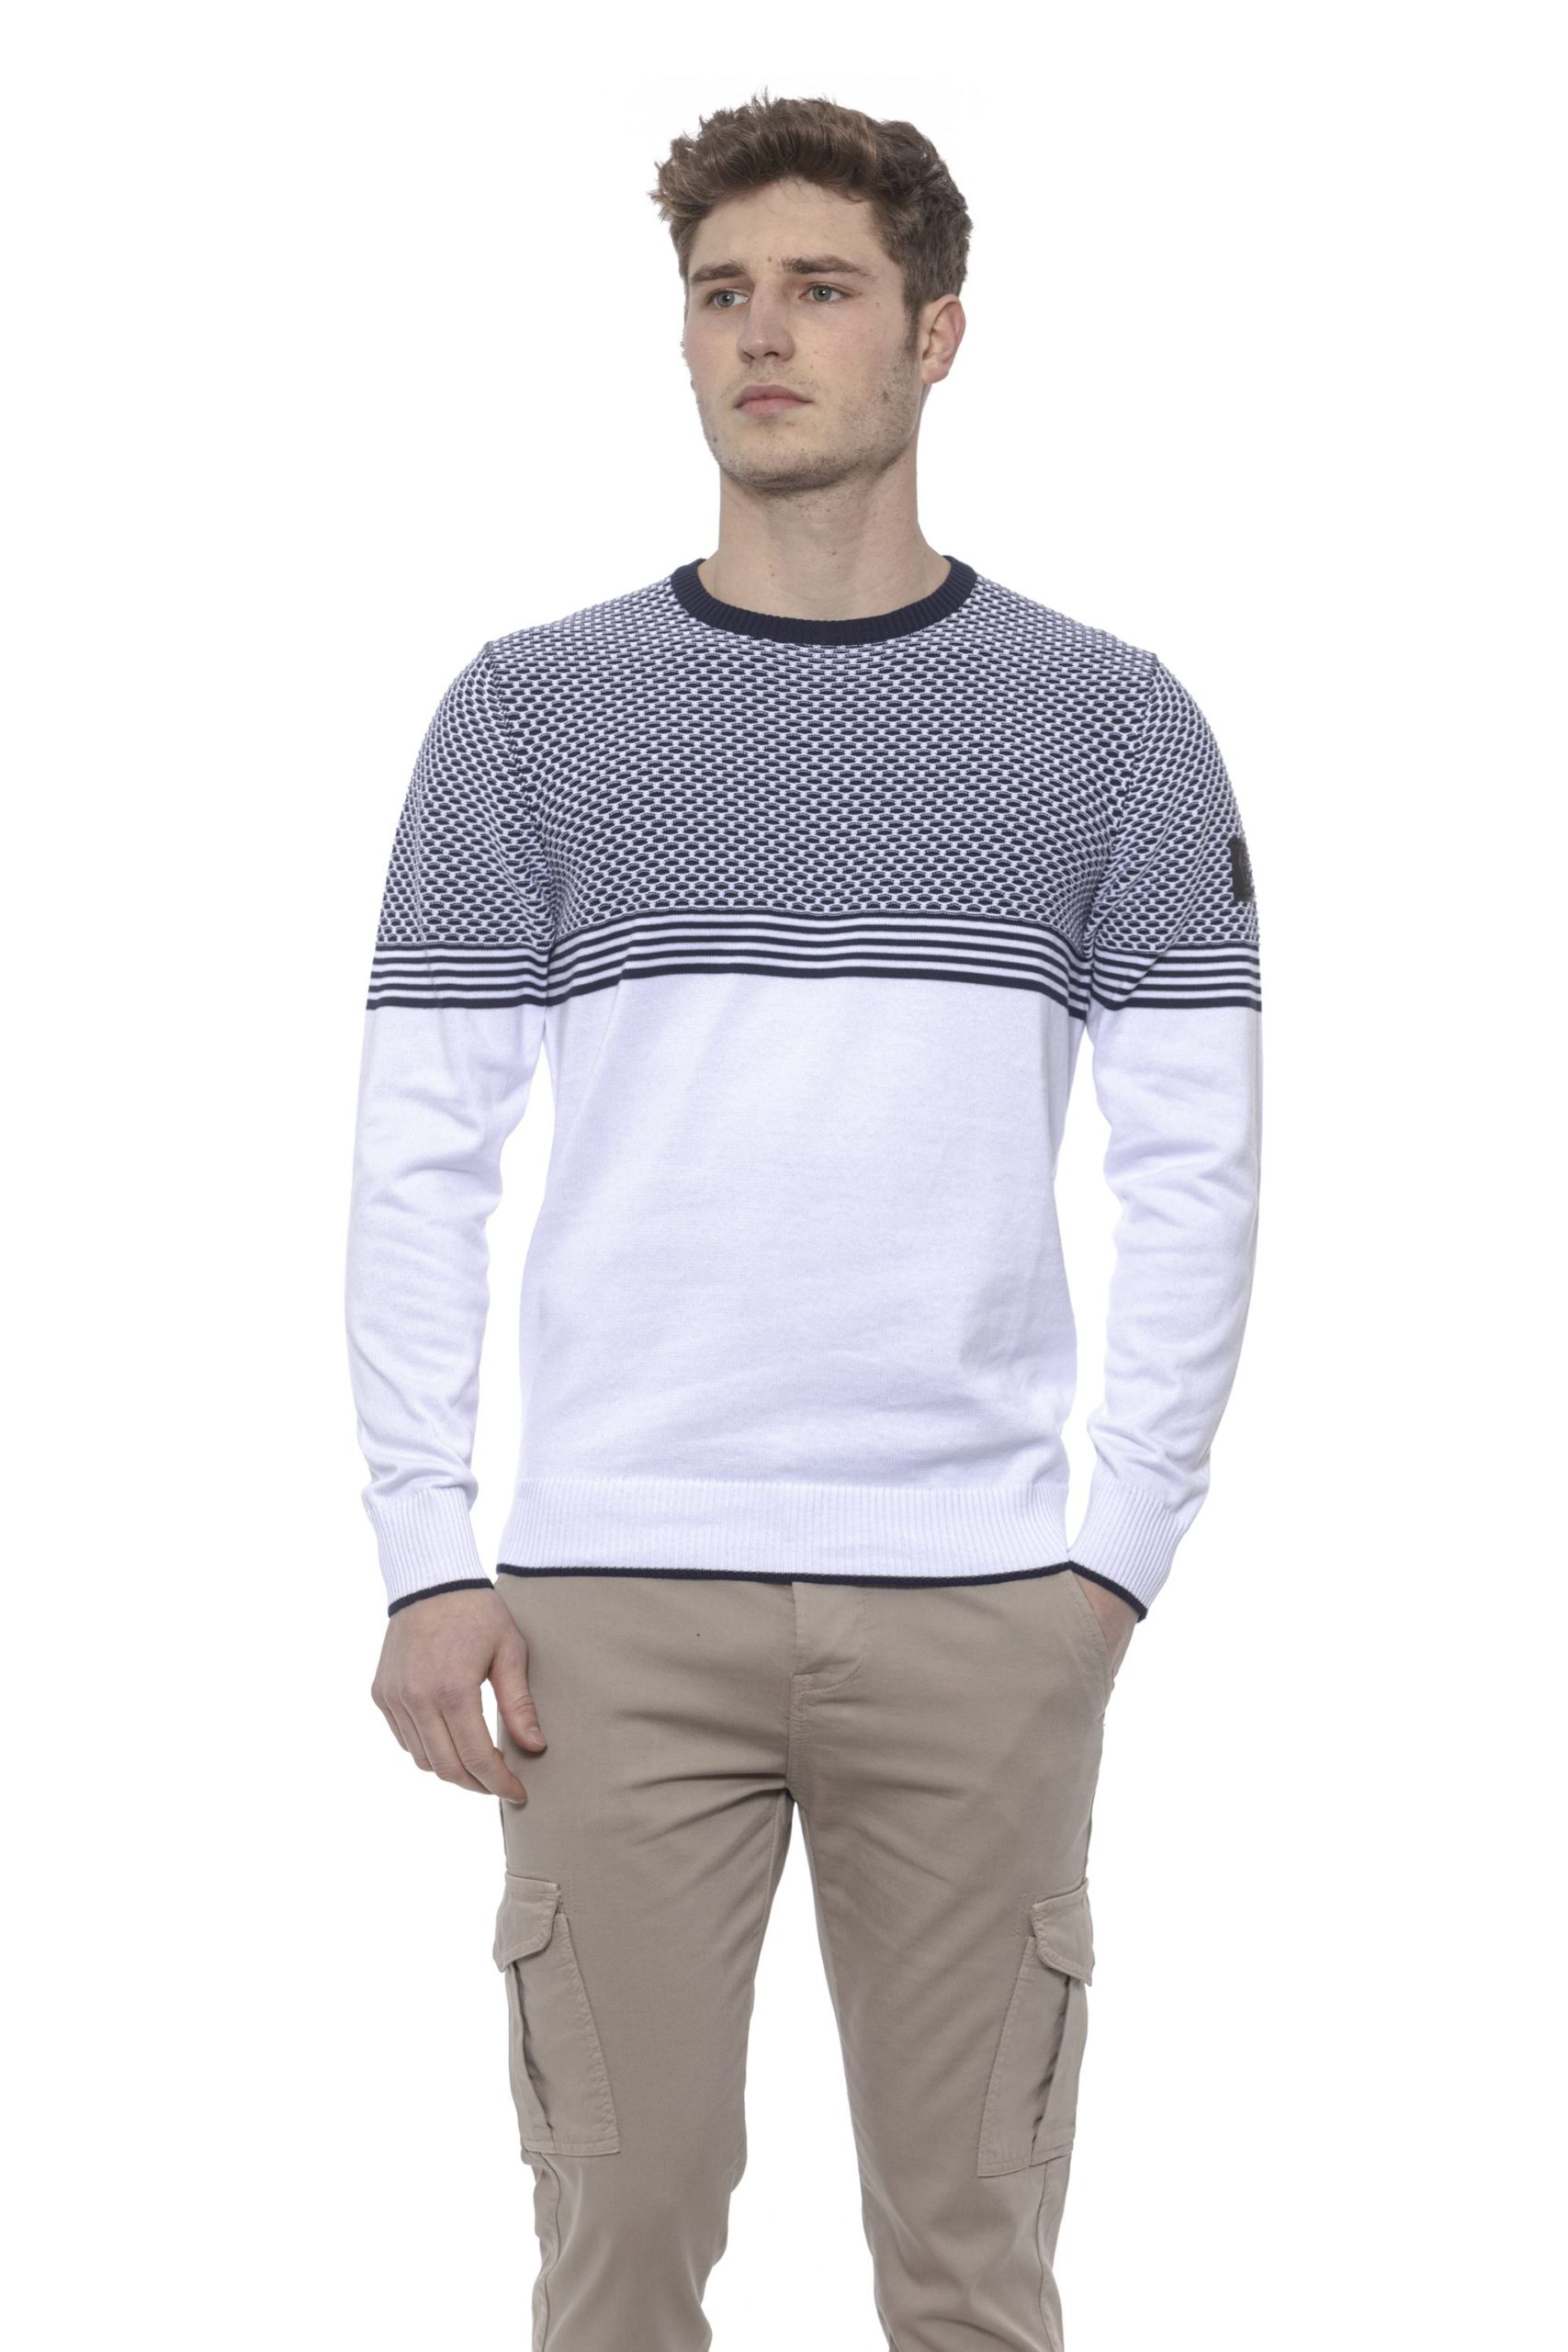 Conte of Florence Men's Sweater White CO1376441 - S